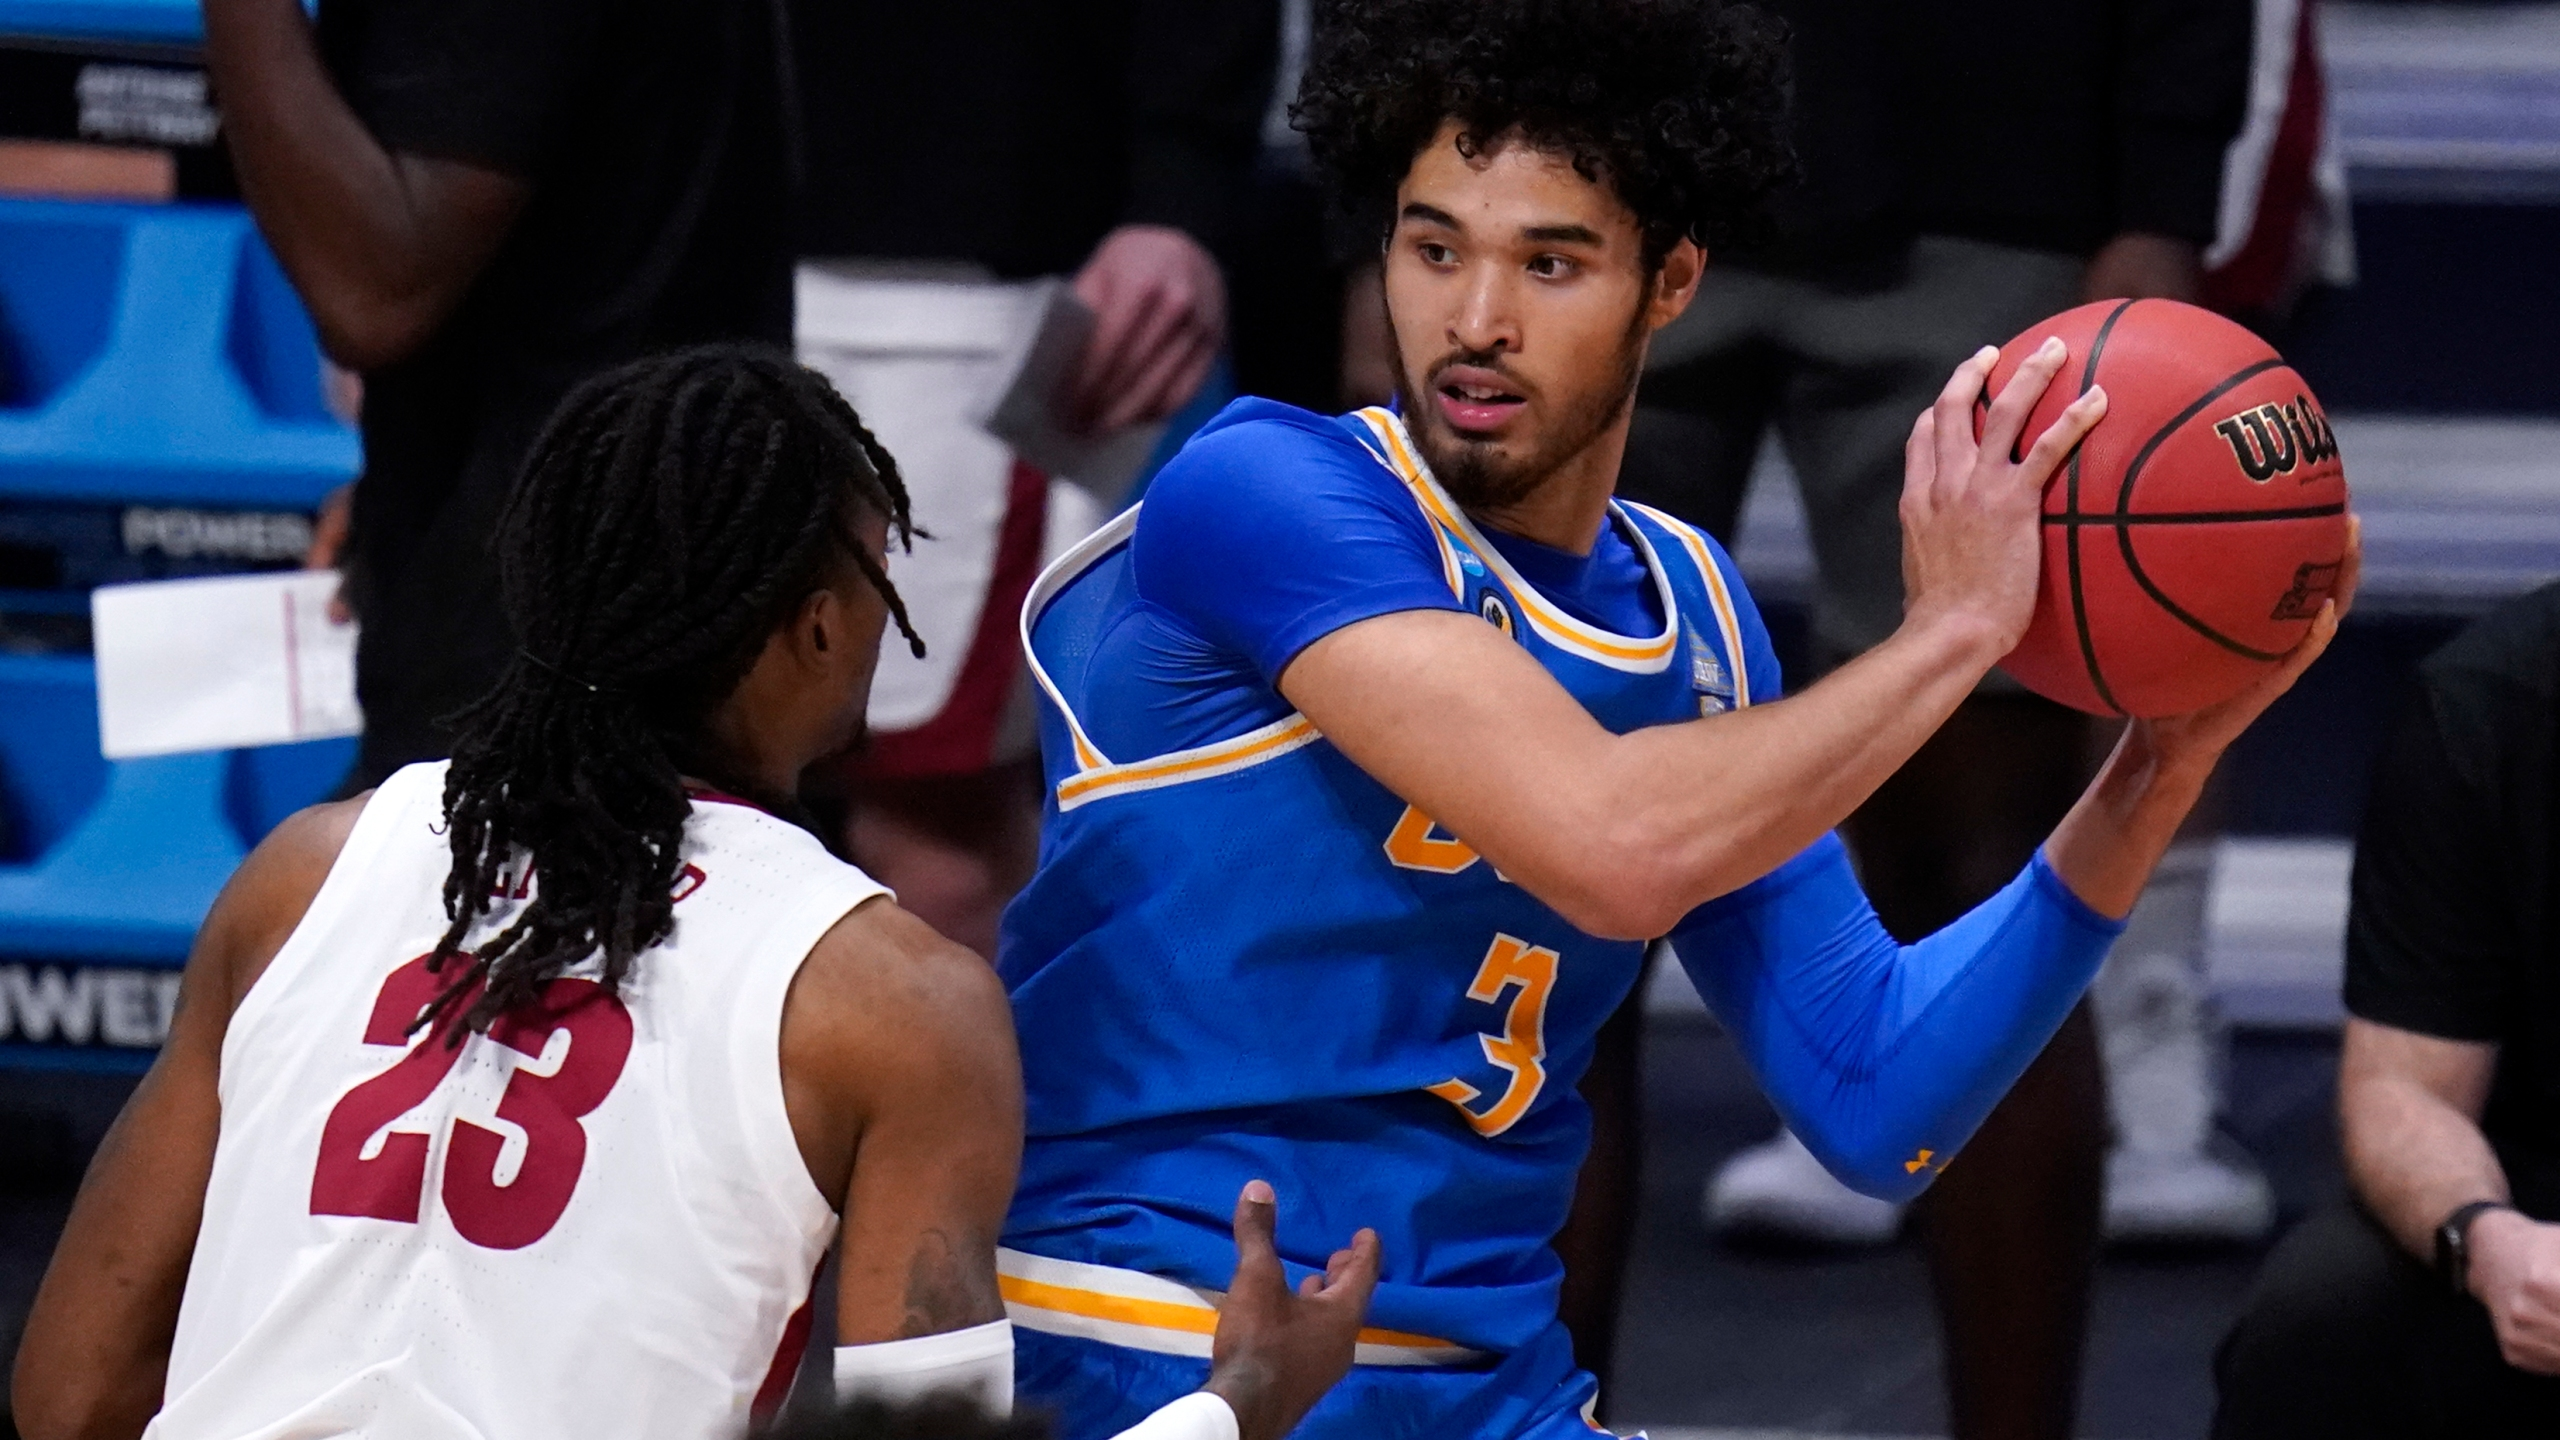 UCLA guard Johnny Juzang (3) protects the ball from Alabama guard John Petty Jr. (AP Photo/Michael Conroy)